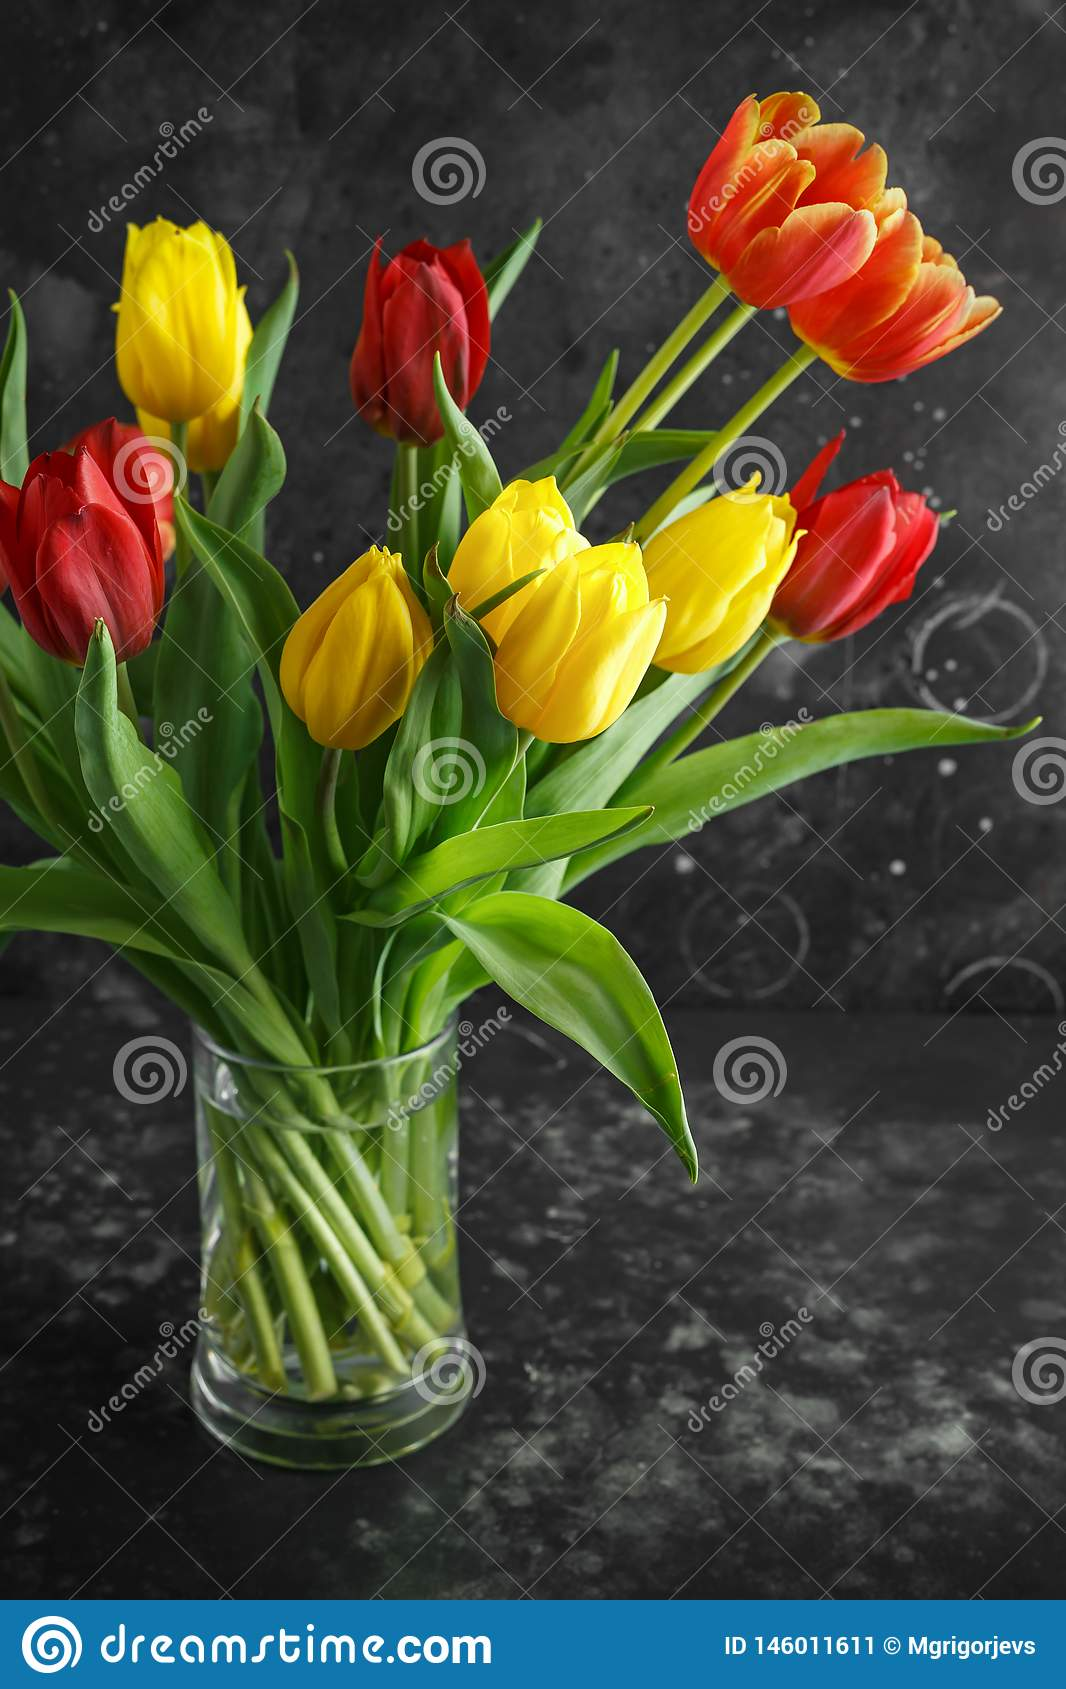 Romantic tulips bouqet on rustic dark background